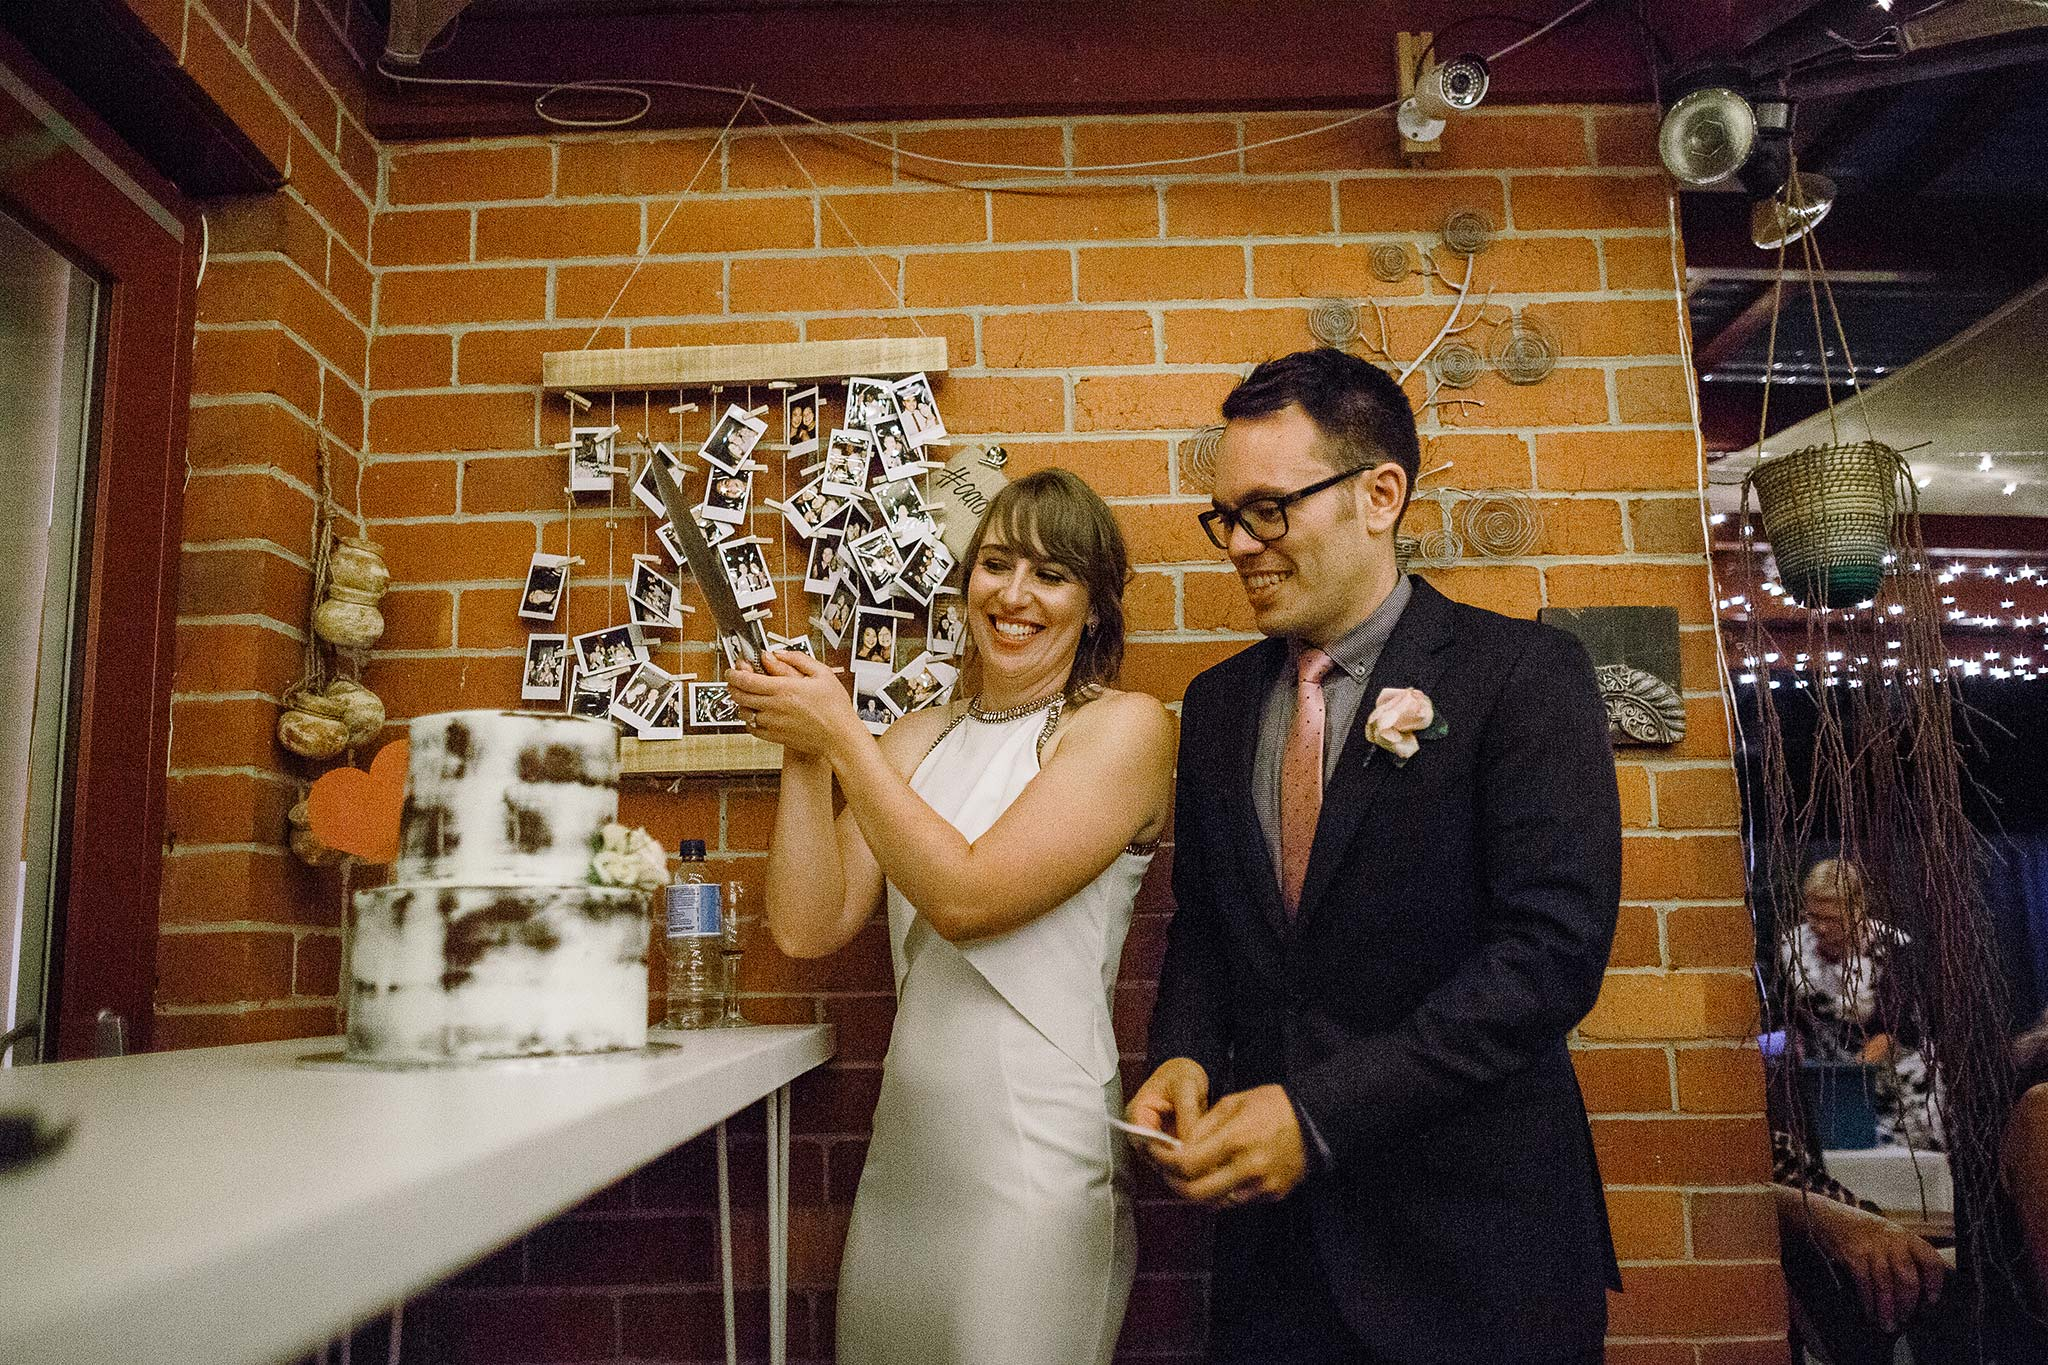 Strathmore-Melbourne-Backyard-Wedding-reception-cake-cutting